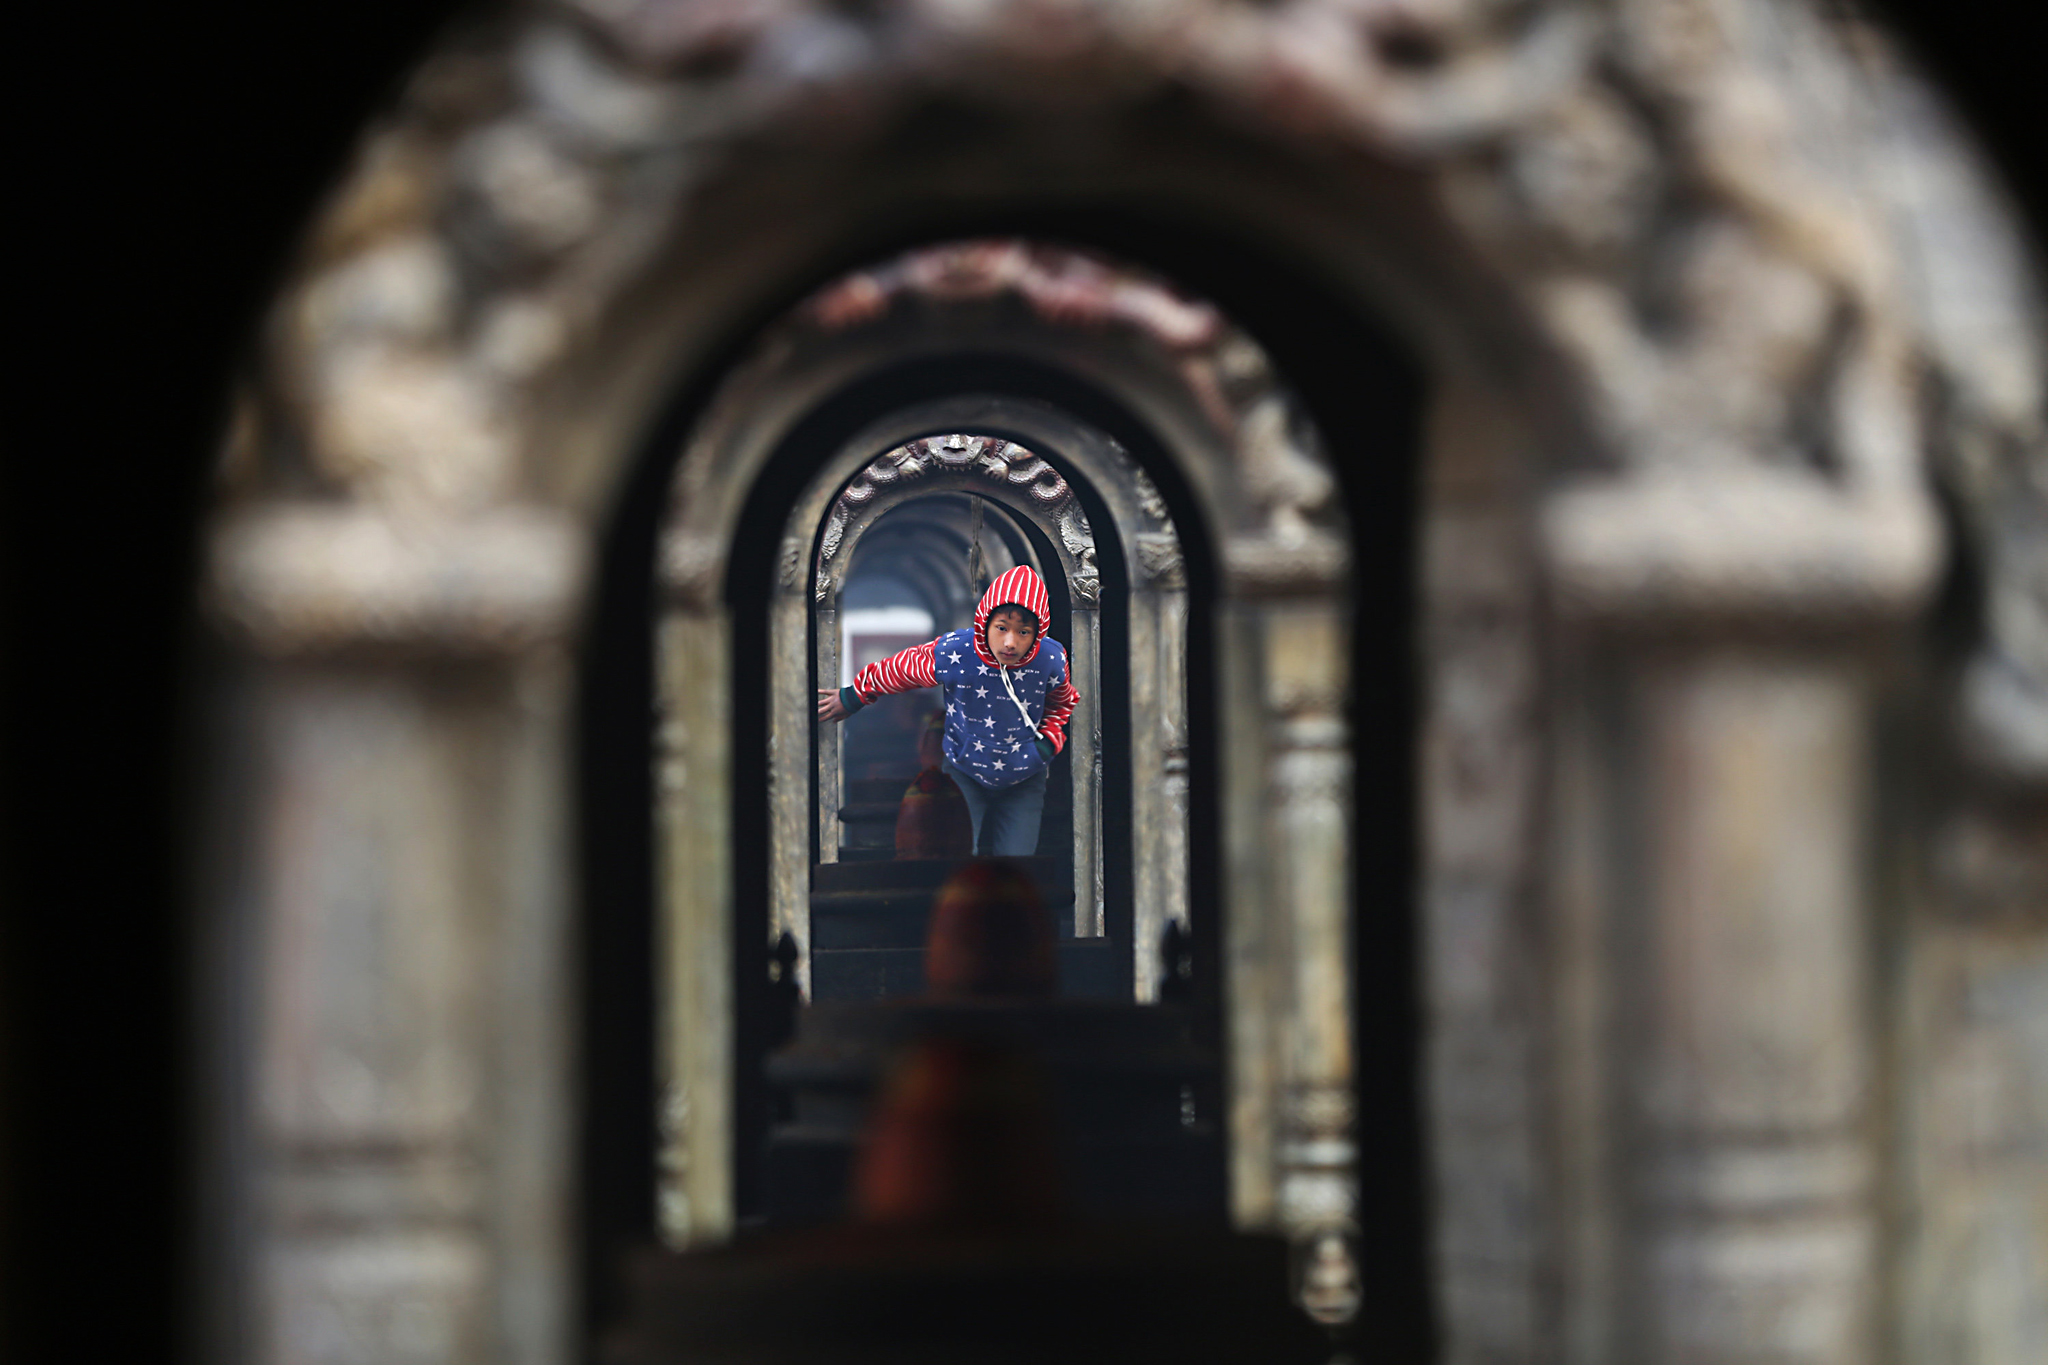 A Nepalese boy walks out of Pashupatinath hindu temple after offering morning prayers in Kathmandu, Nepal, Monday, Jan. 18, 2016. (AP Photo/Niranjan Shrestha)